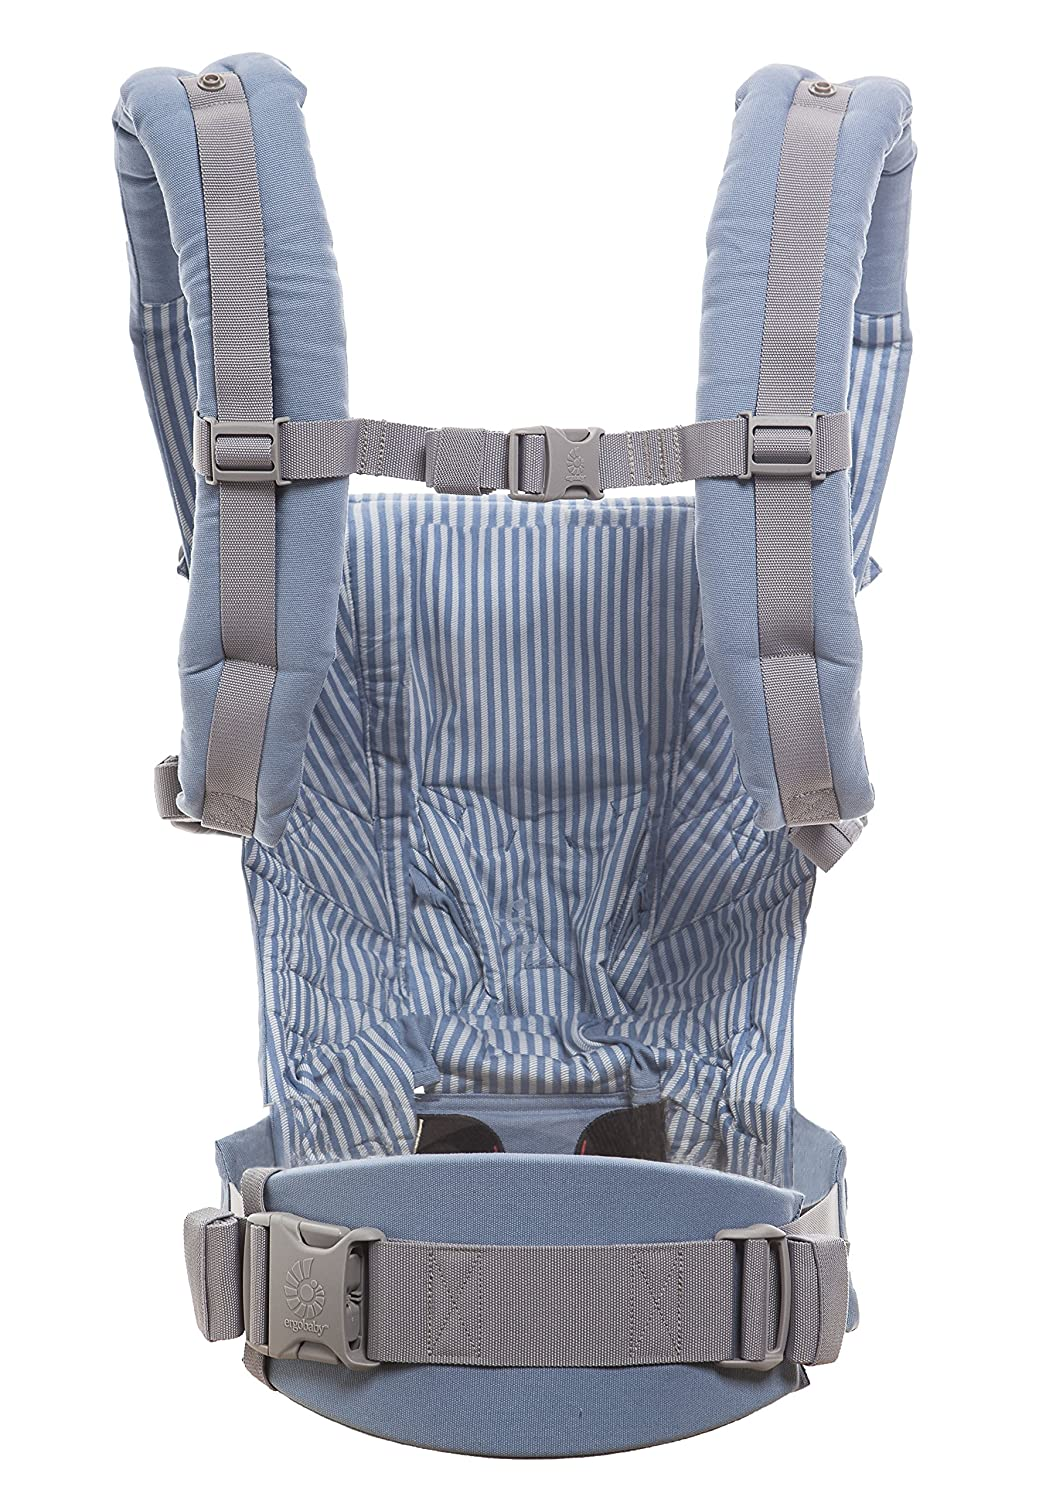 faac1d5cf73 Amazon.com   Ergobaby Adapt 3 Position Baby Carrier (Azure Blue)   Baby